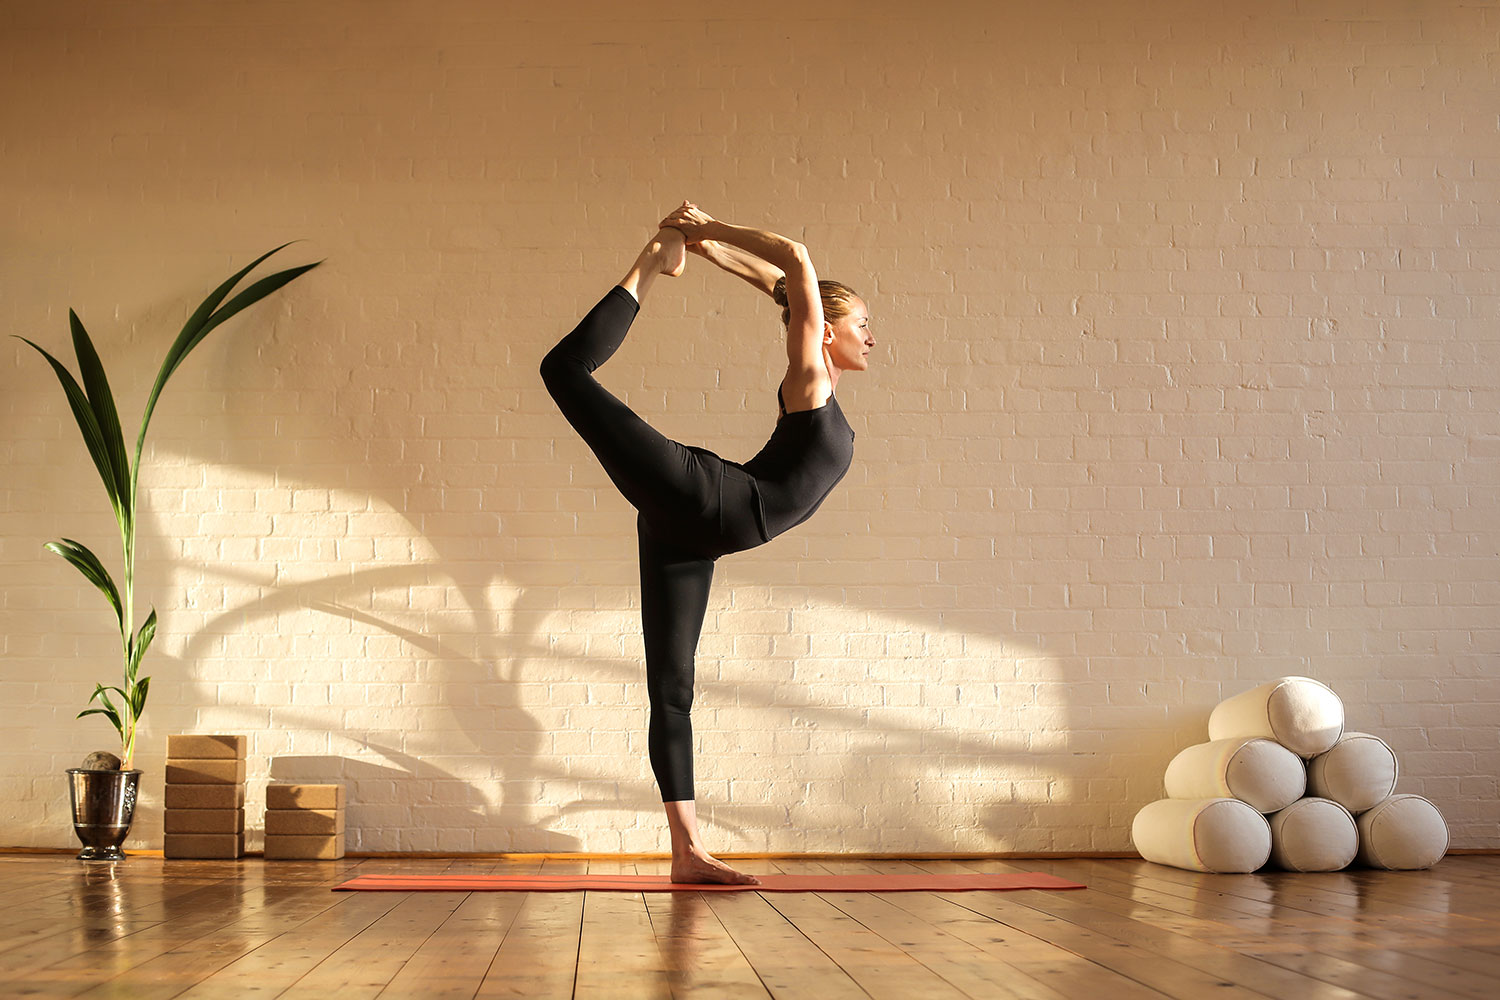 35 Interesting Yoga Facts You May Not Know